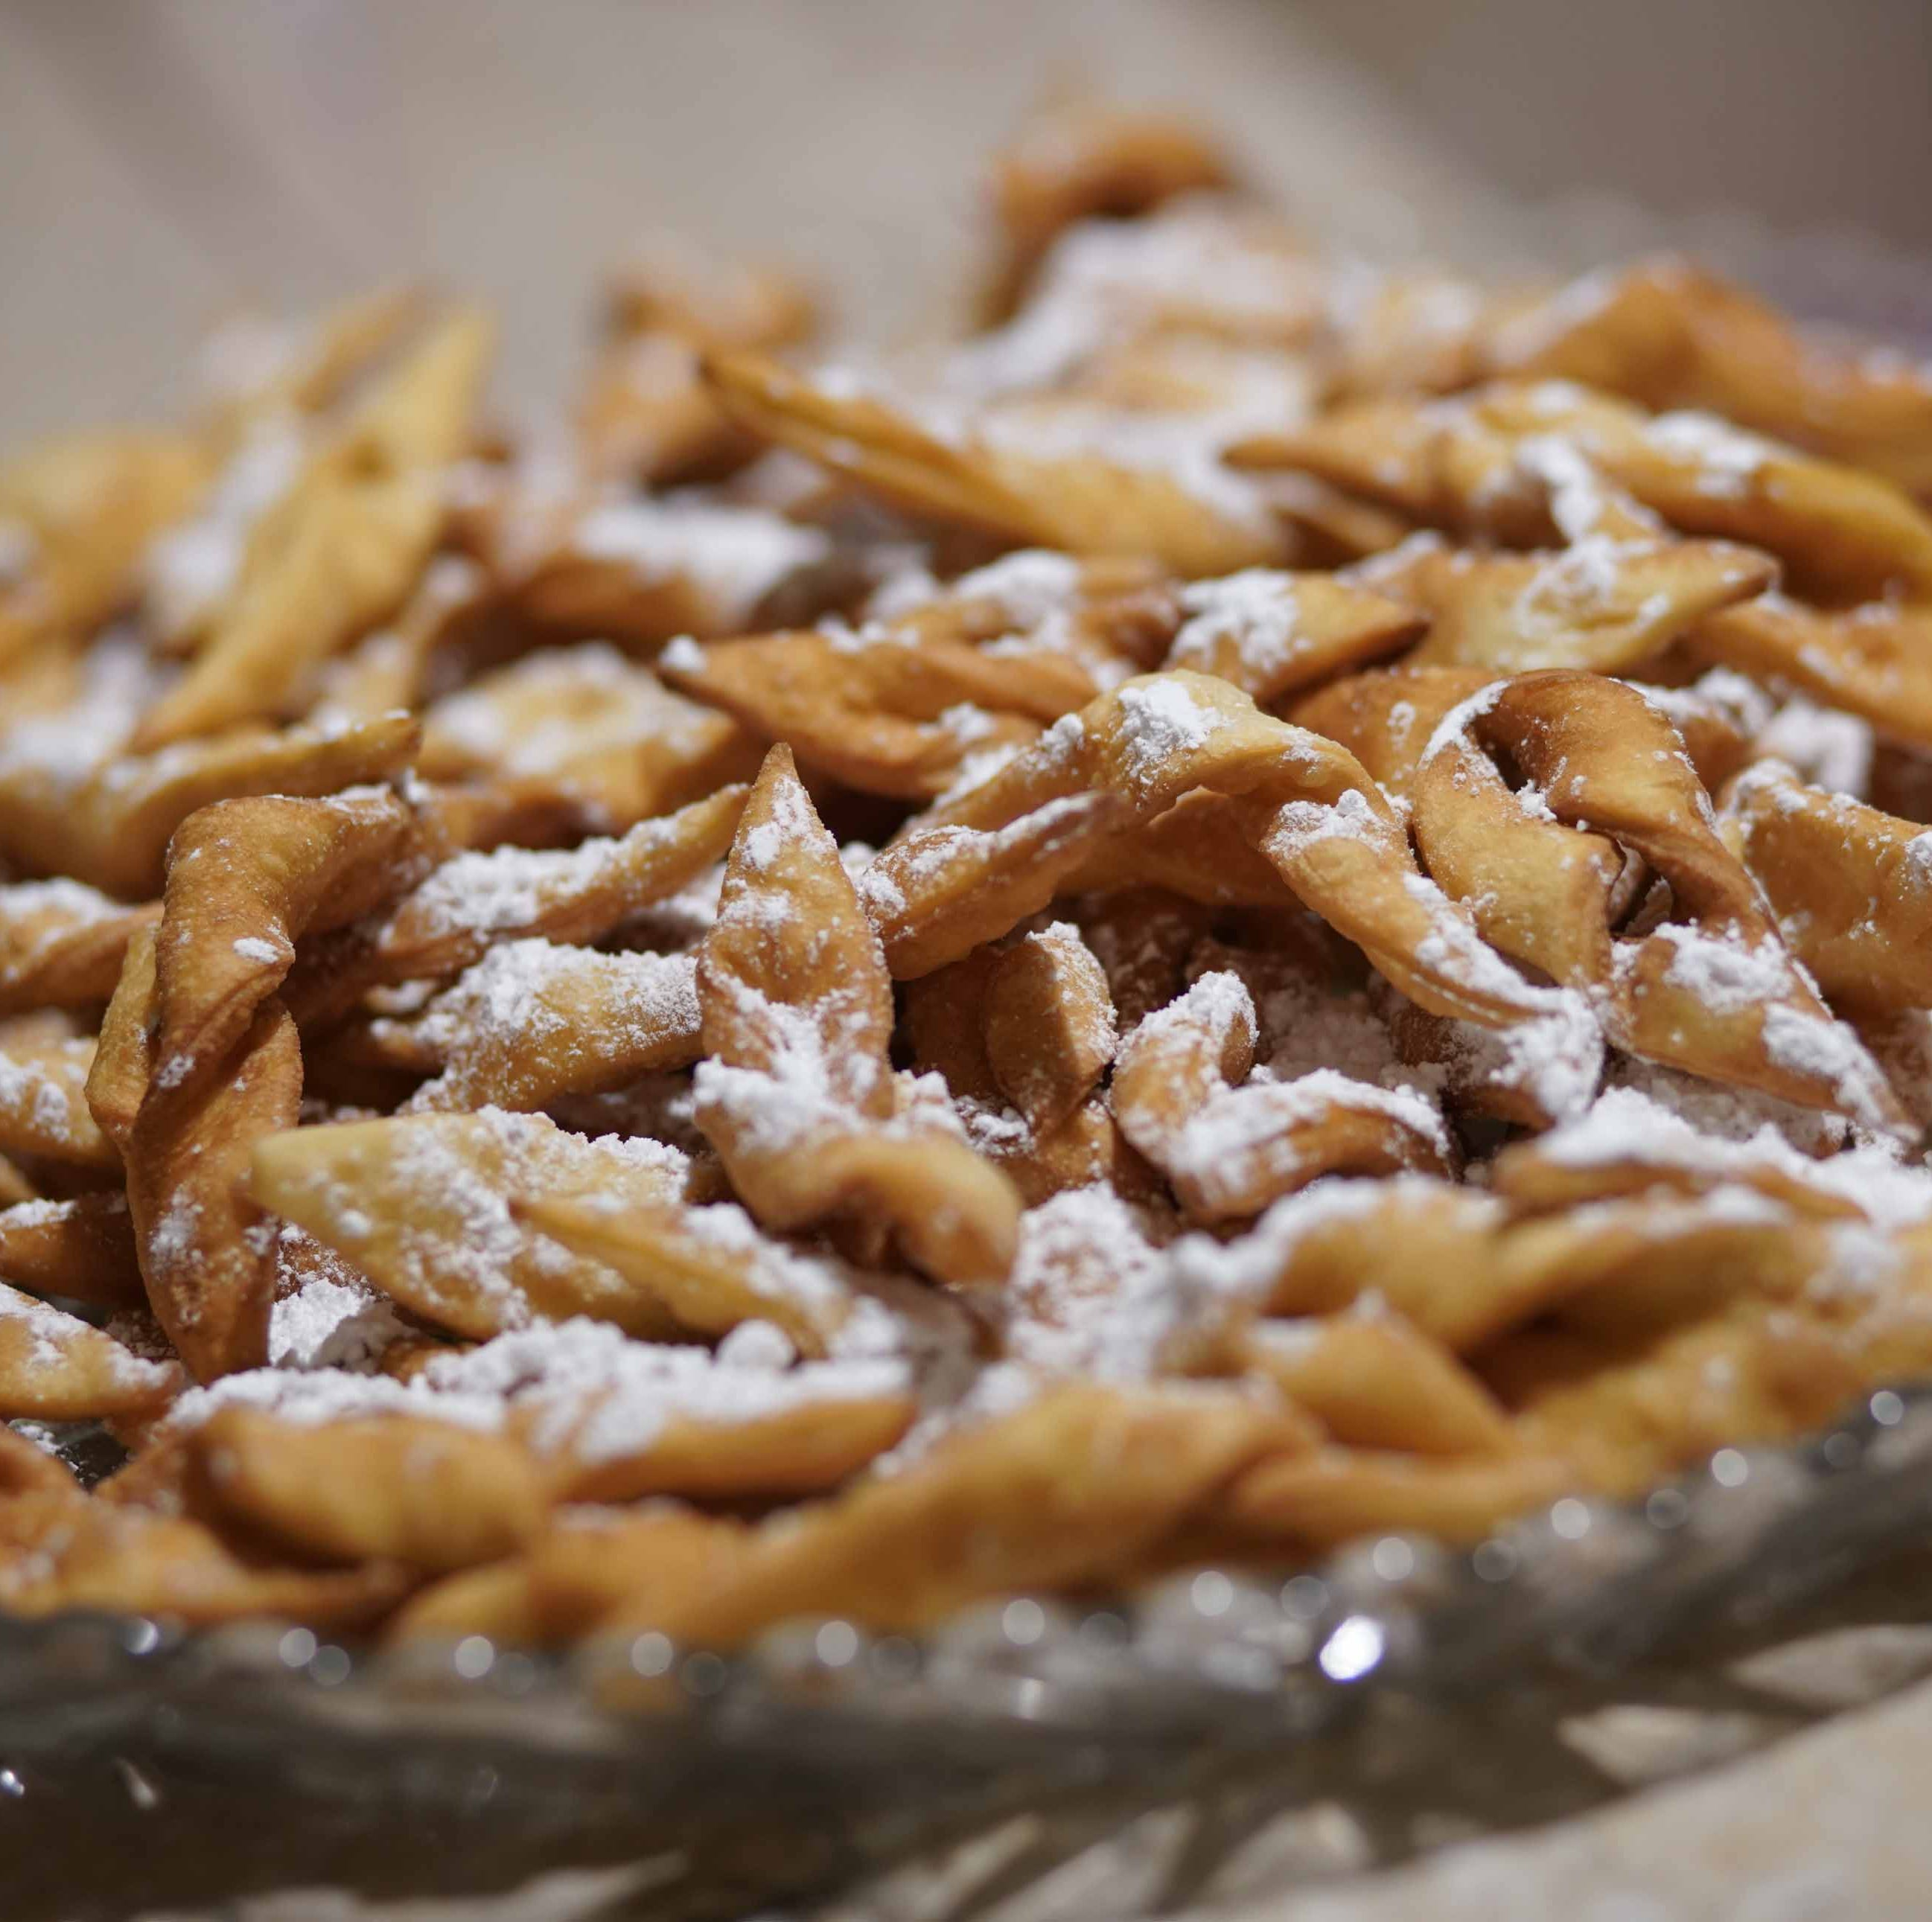 Fried polish cookies are a St. Hedwig's tradition